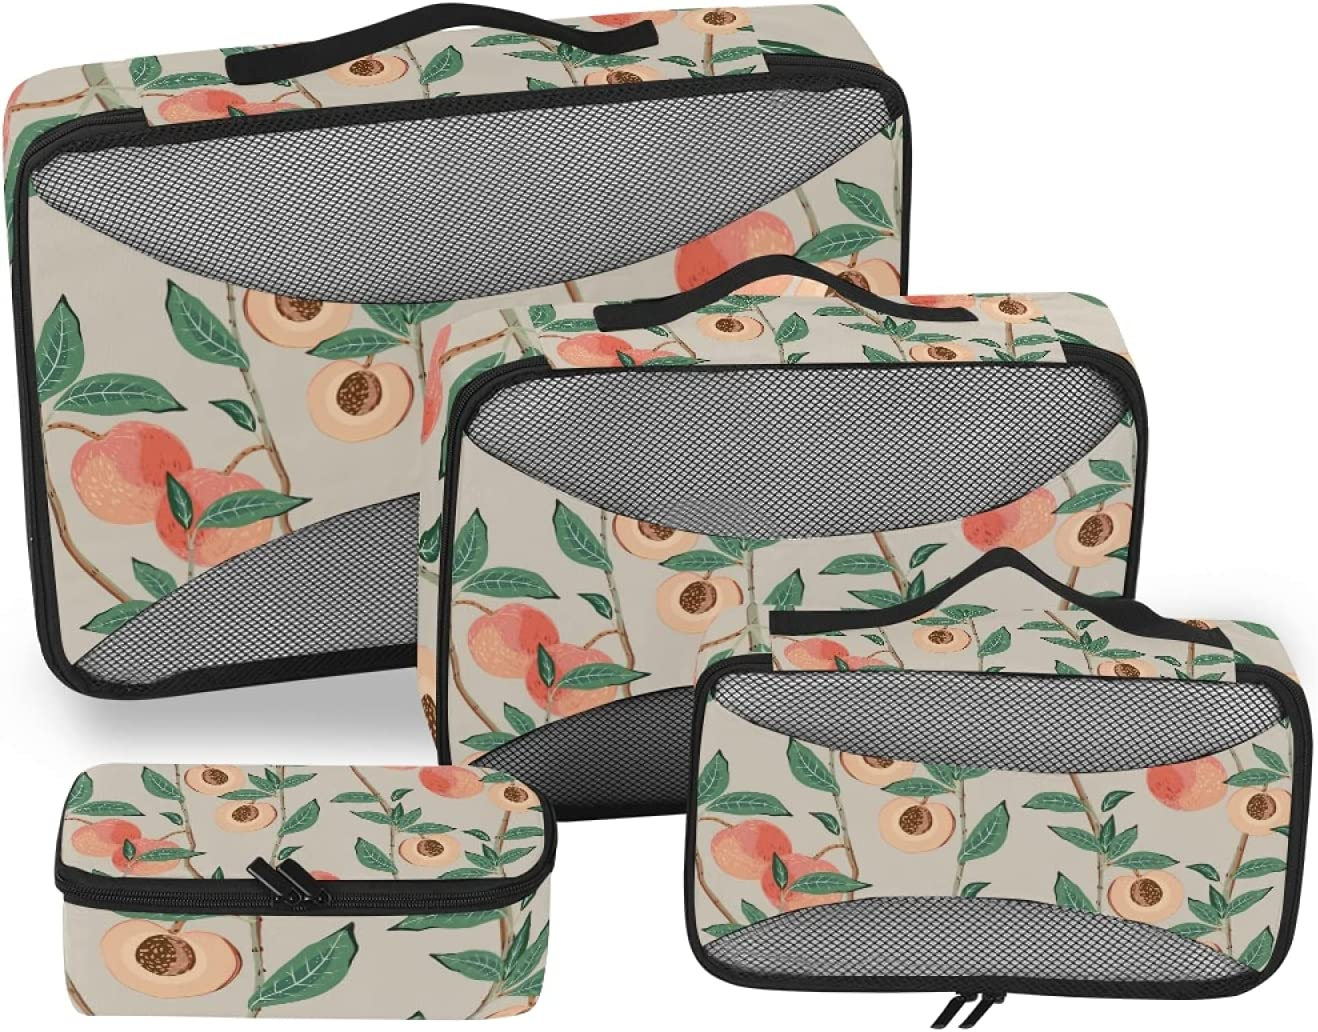 Peach Tree Branches Packing Storage Max 86% OFF 2021 A Bag Travel Organizer 4-Pcs